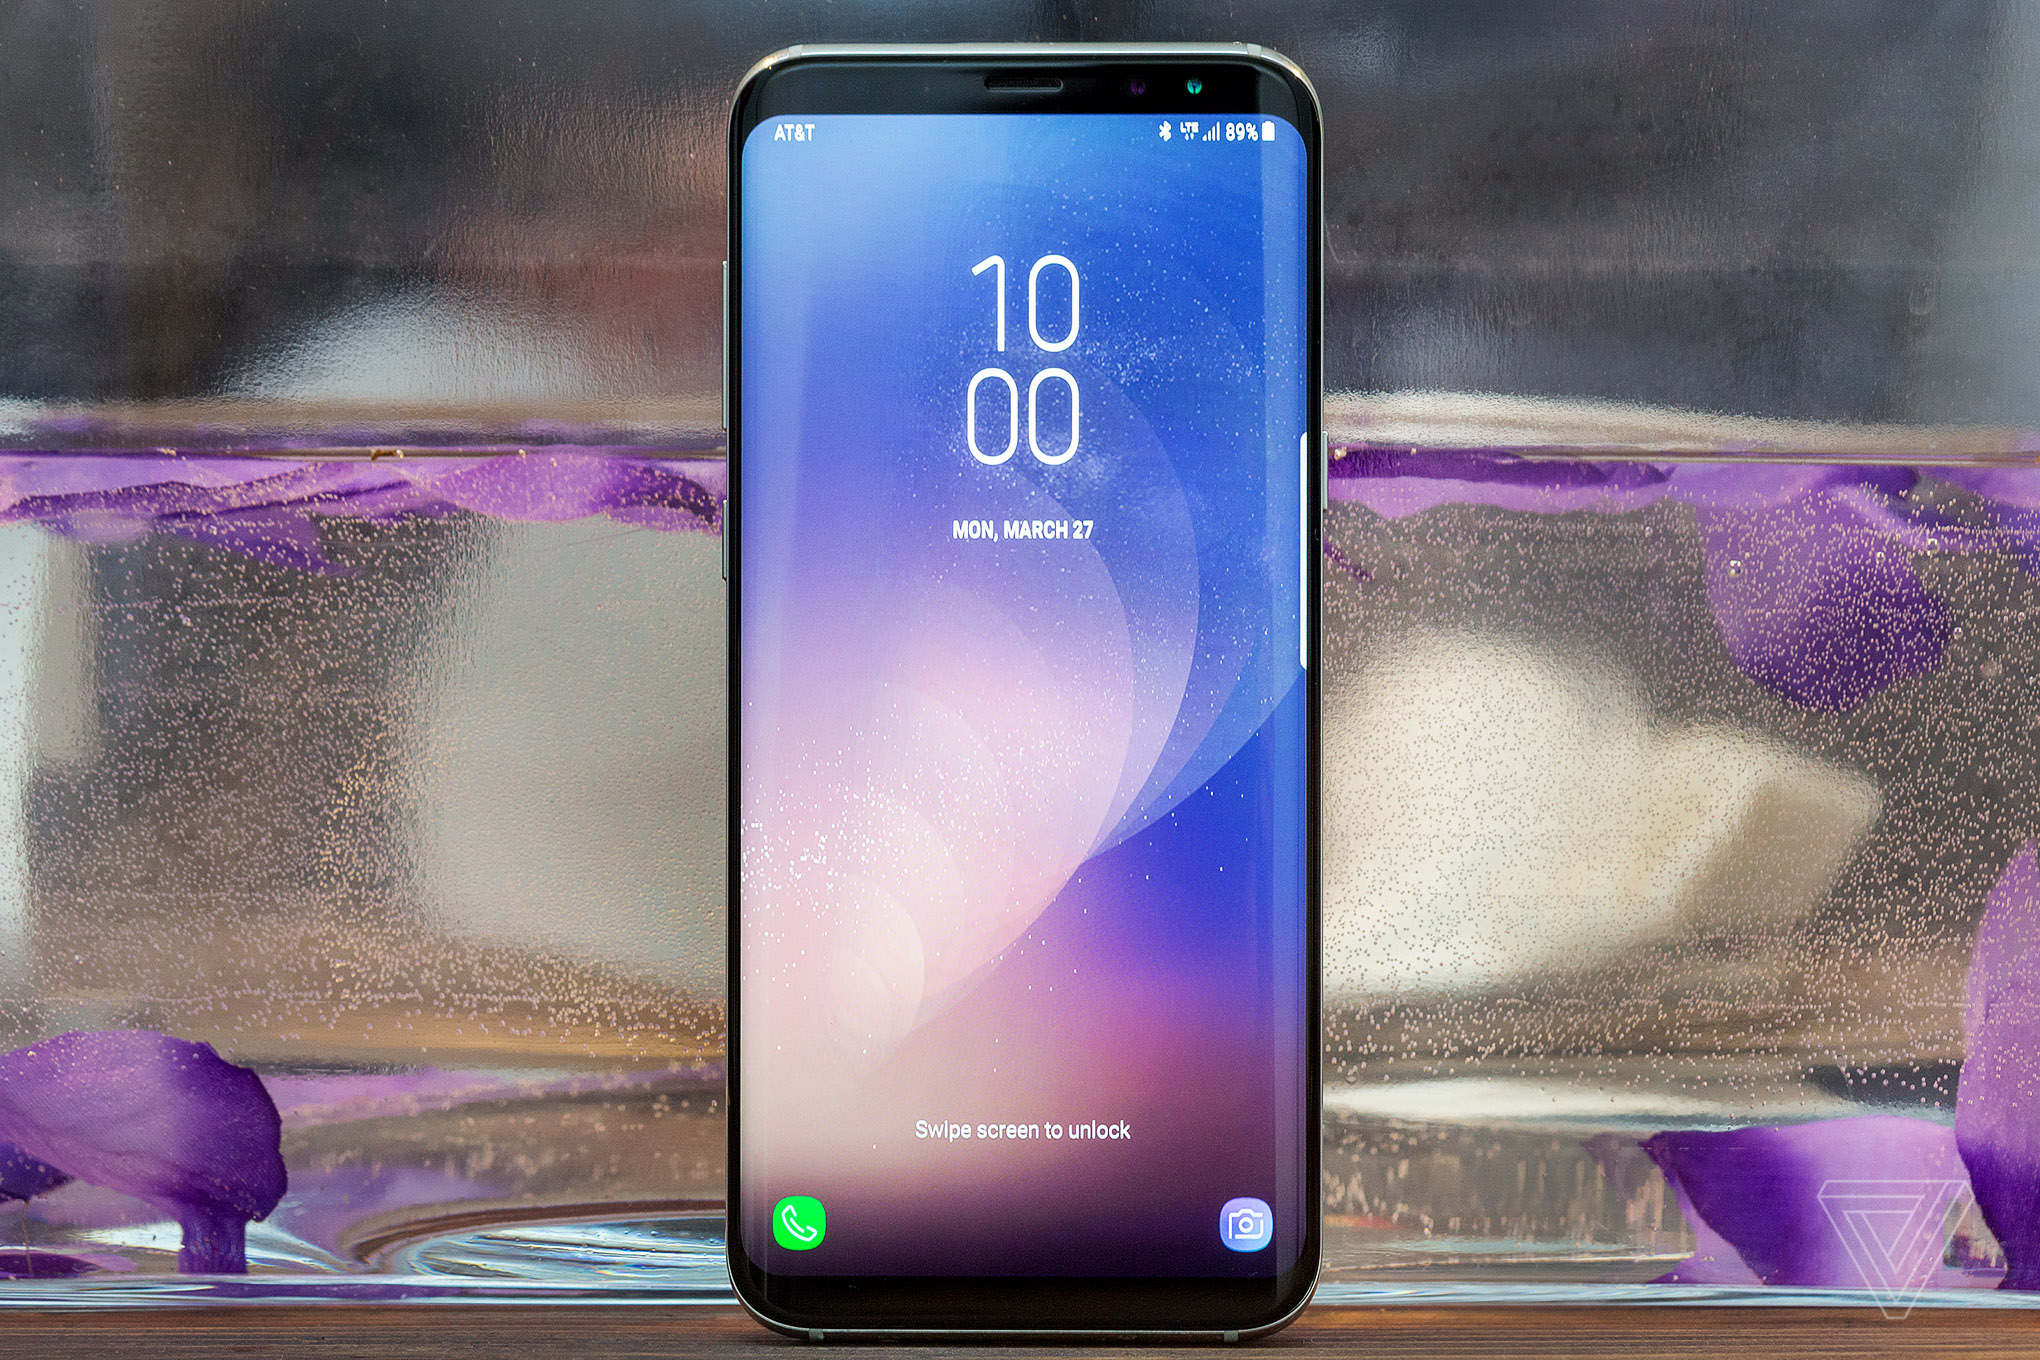 Techmeme: More powerful Galaxy S8+ with 6GB RAM and 128GB